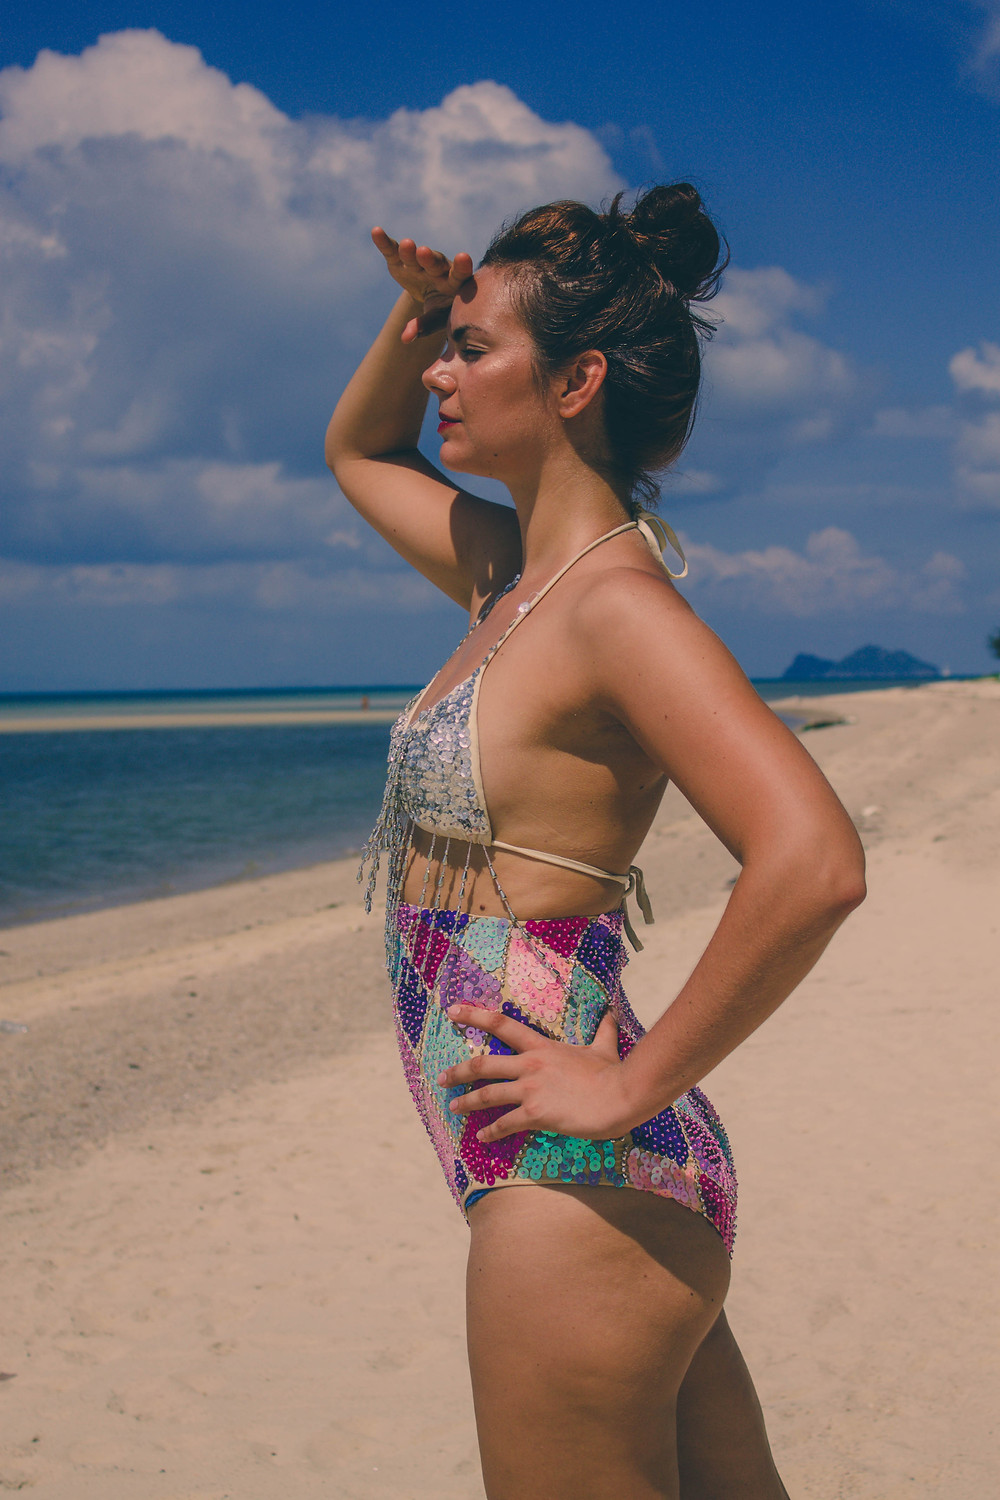 lady jane bristol sequin harlequin shorts beach lookbook campaign under a palm tree photography